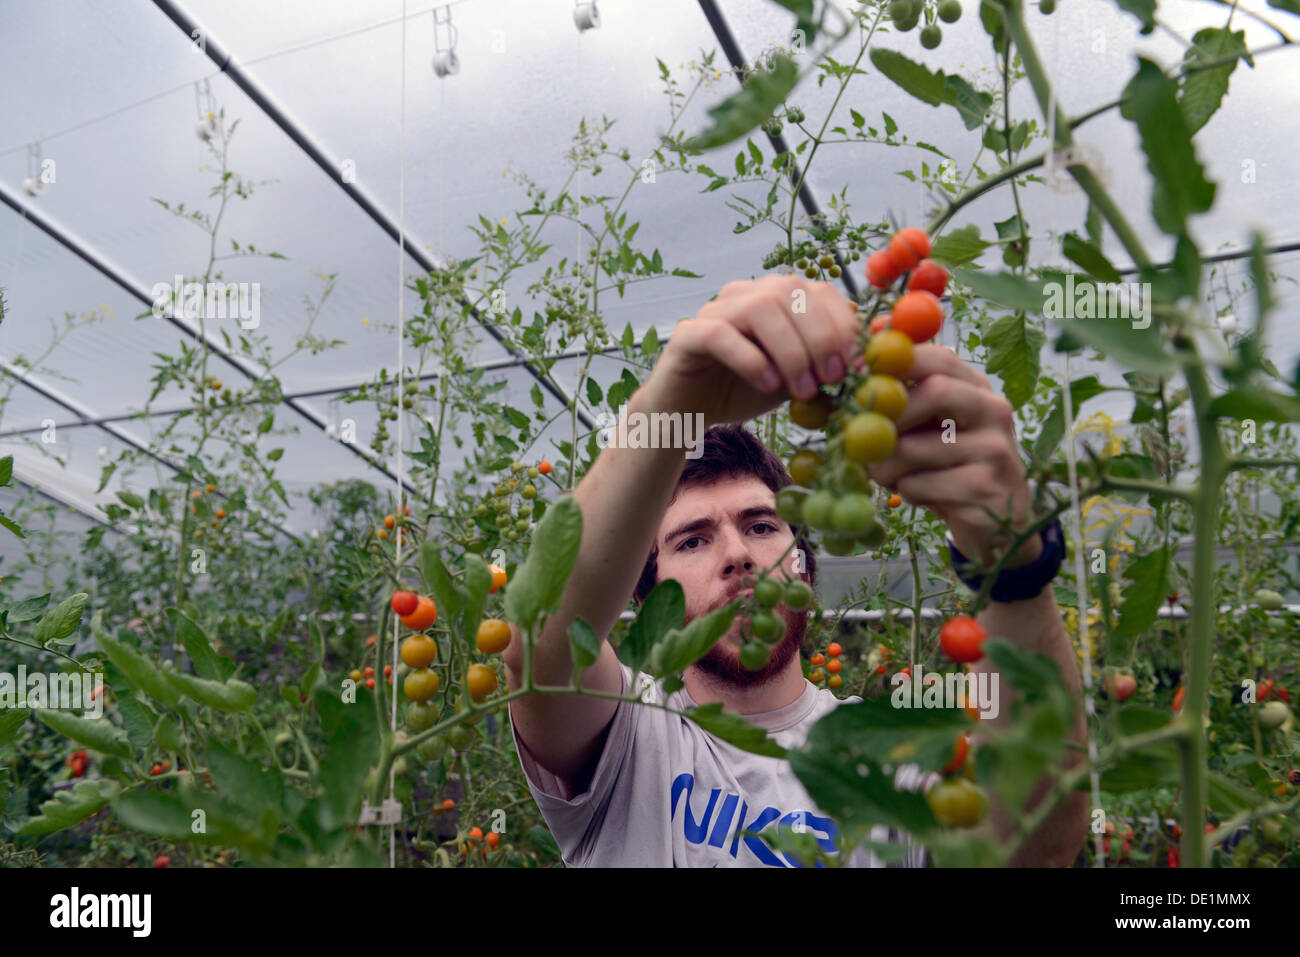 yale university student Jackson Blum, '15, works for the summer at Yale's organic garden. - Stock Image